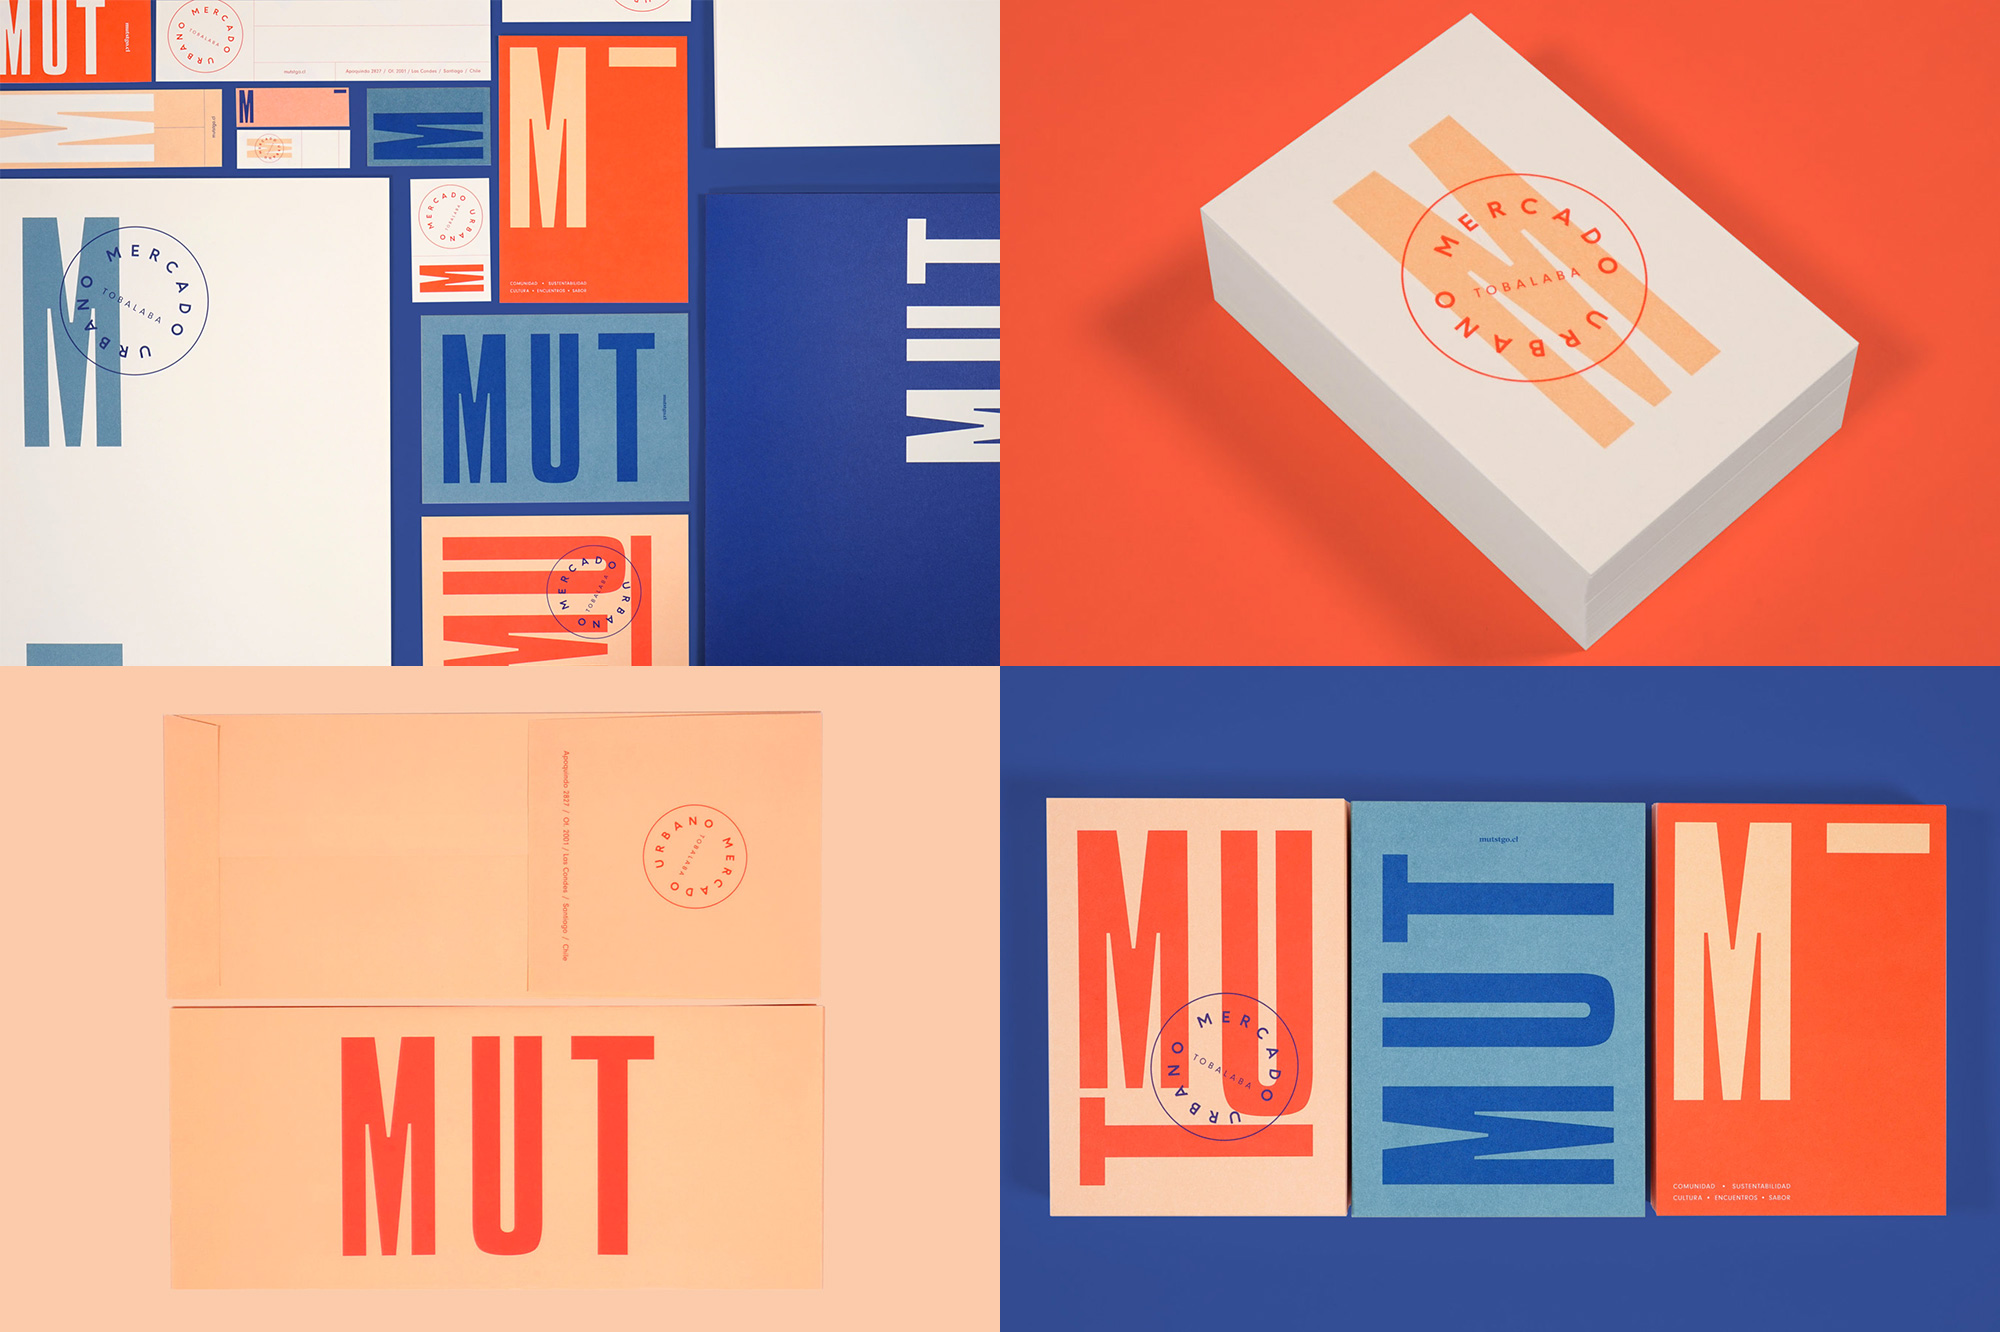 MUT by Blok Design